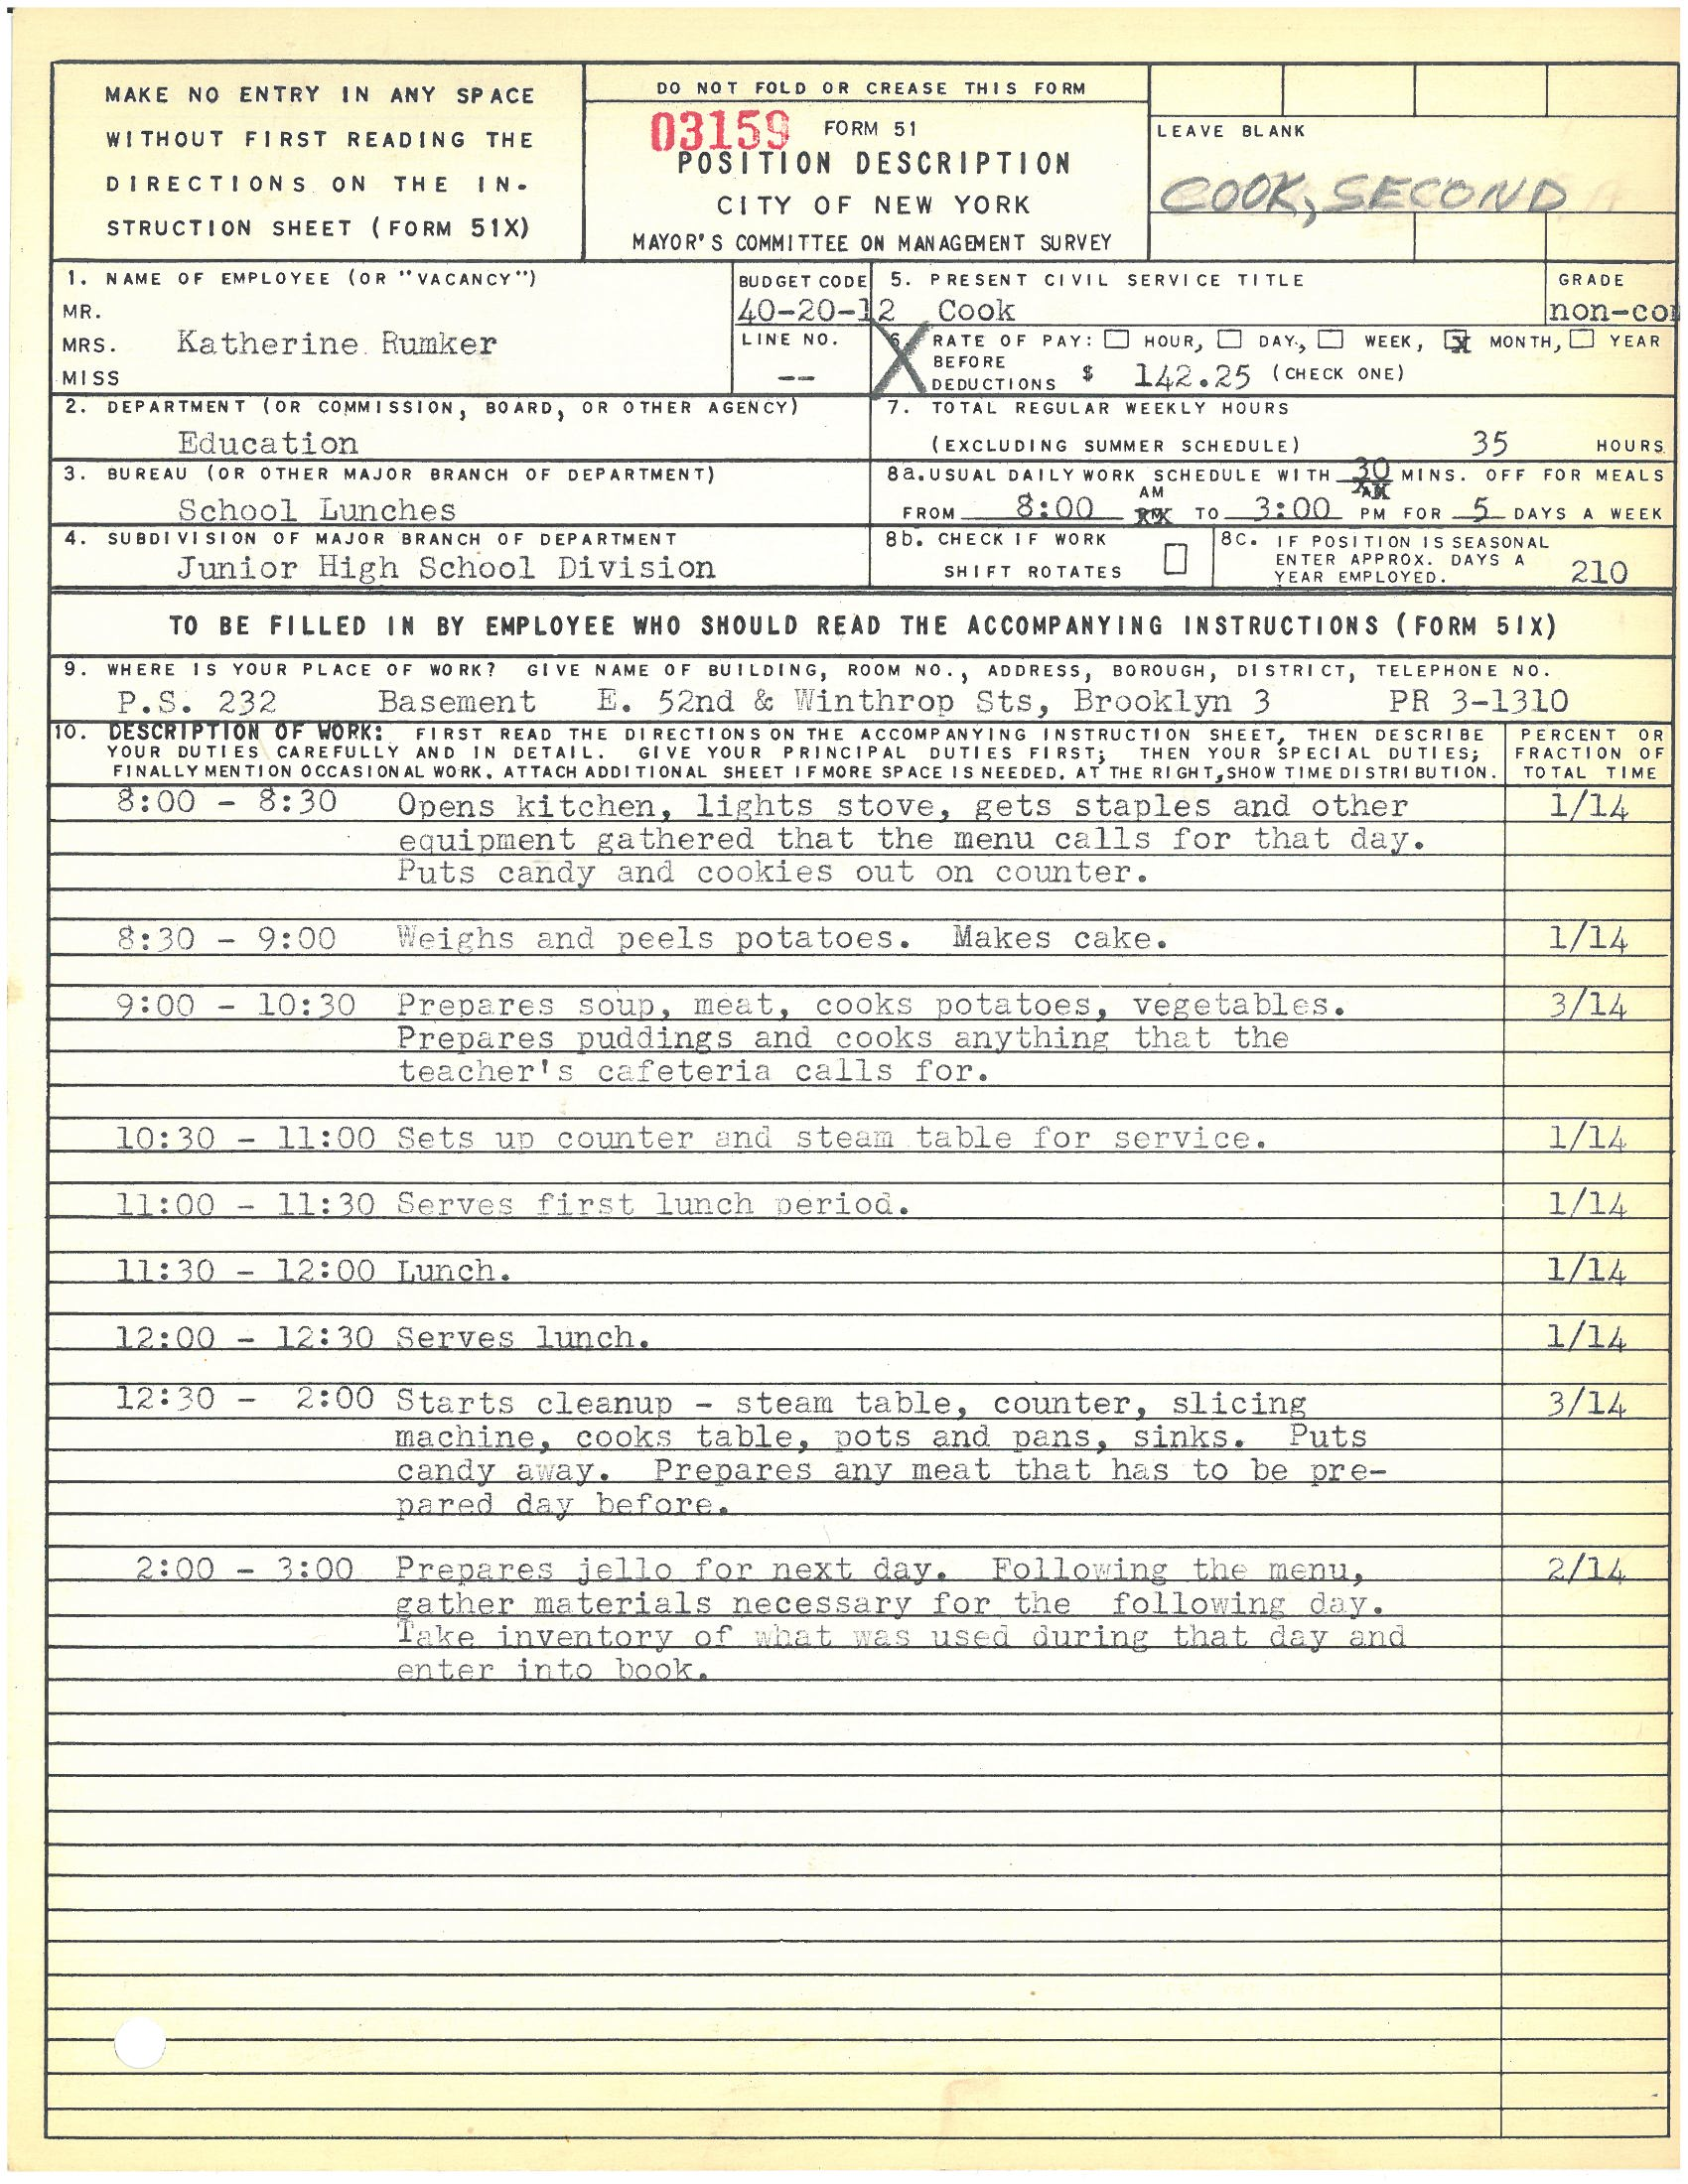 Form 51: Katherine Rumker, Cook, PS 232, Brooklyn. Mayor's Committee on Management Survey, circa 1950. NYC Municipal Archives.